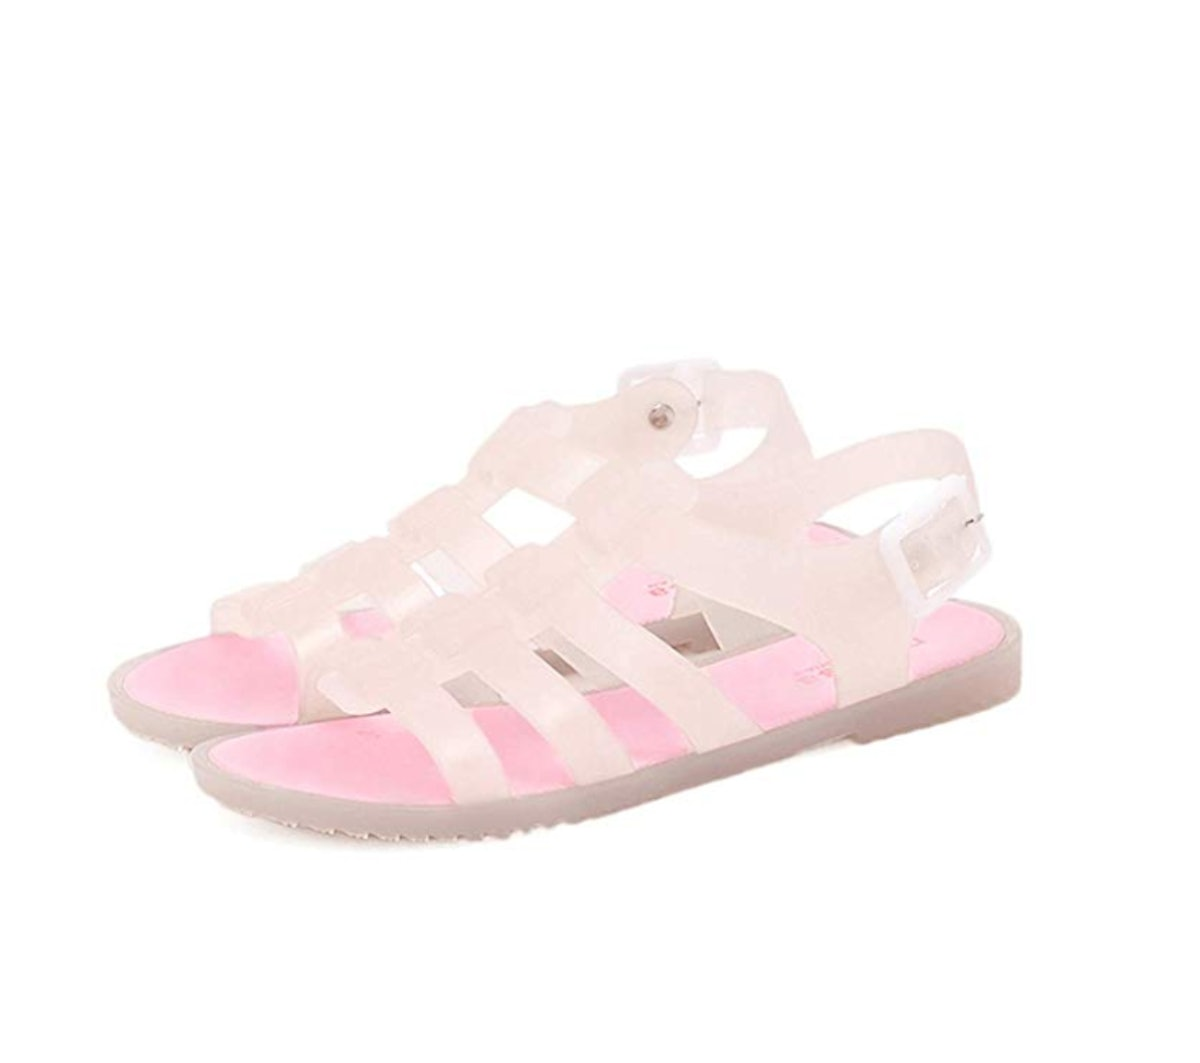 Yehopere Women's Jelly Sandals T-Strap Slingback Flats Clear Summer Beach Rain Shoes